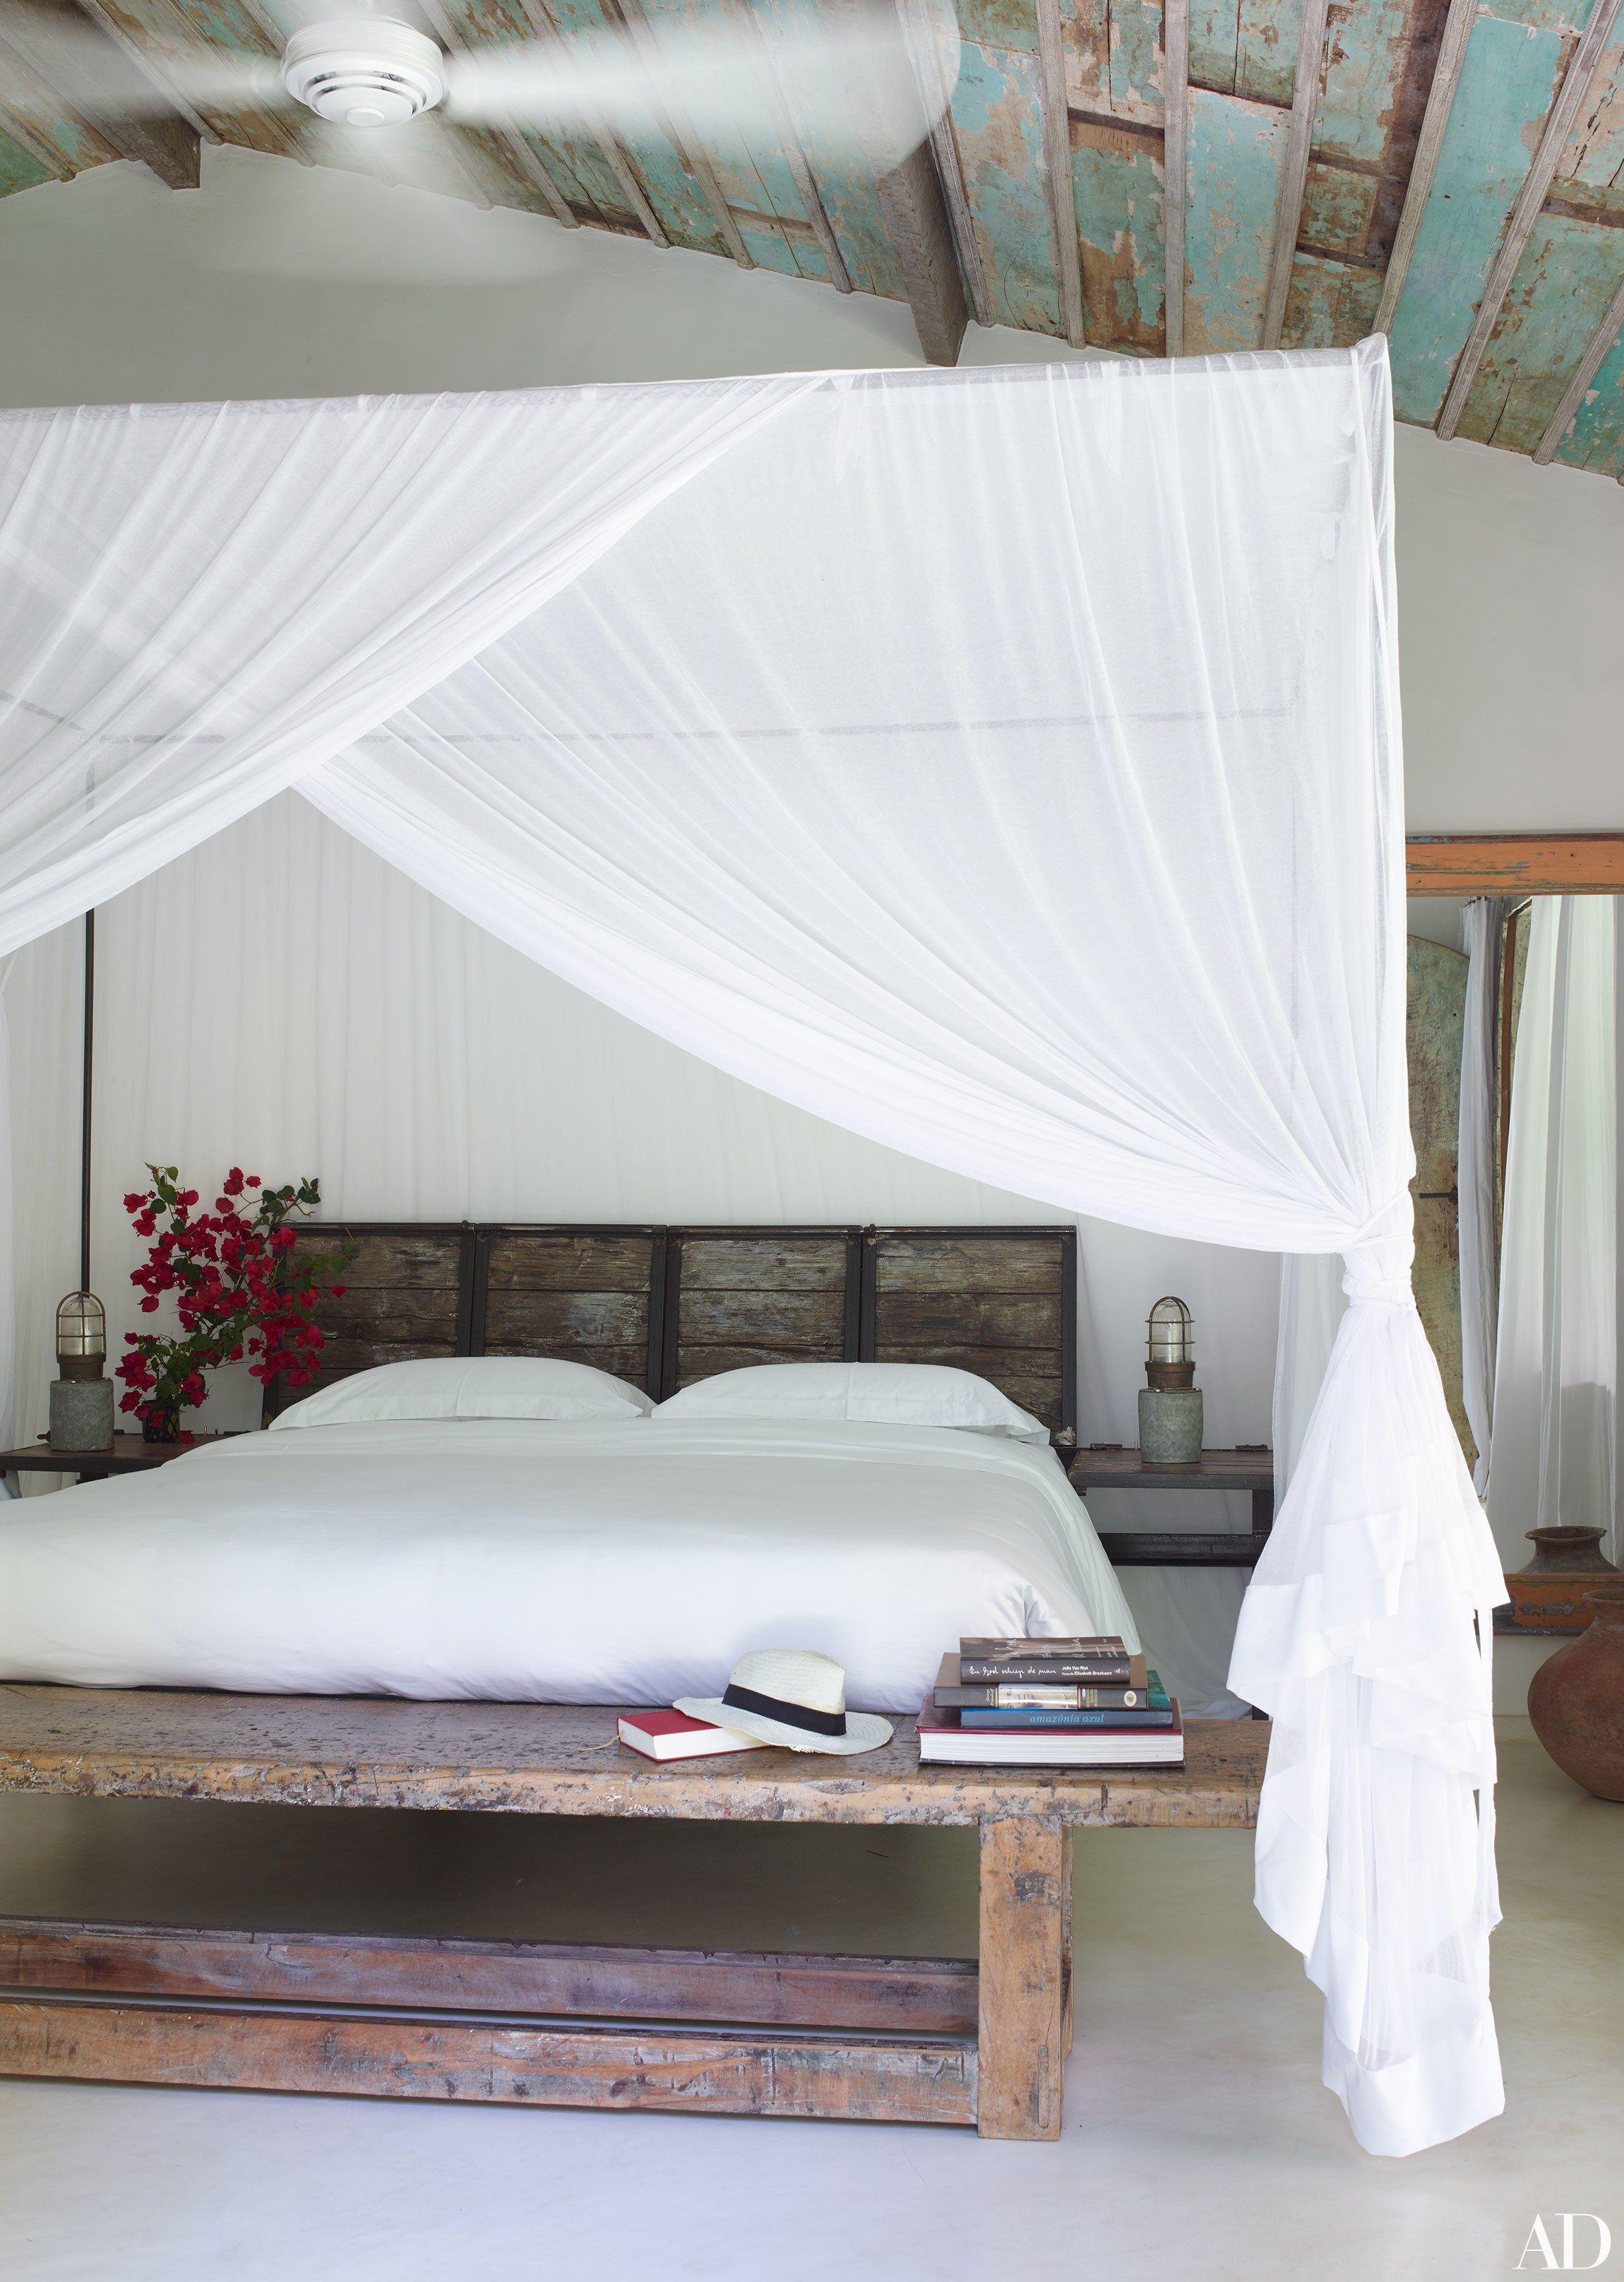 go inside anderson trancoso brazil vacation home